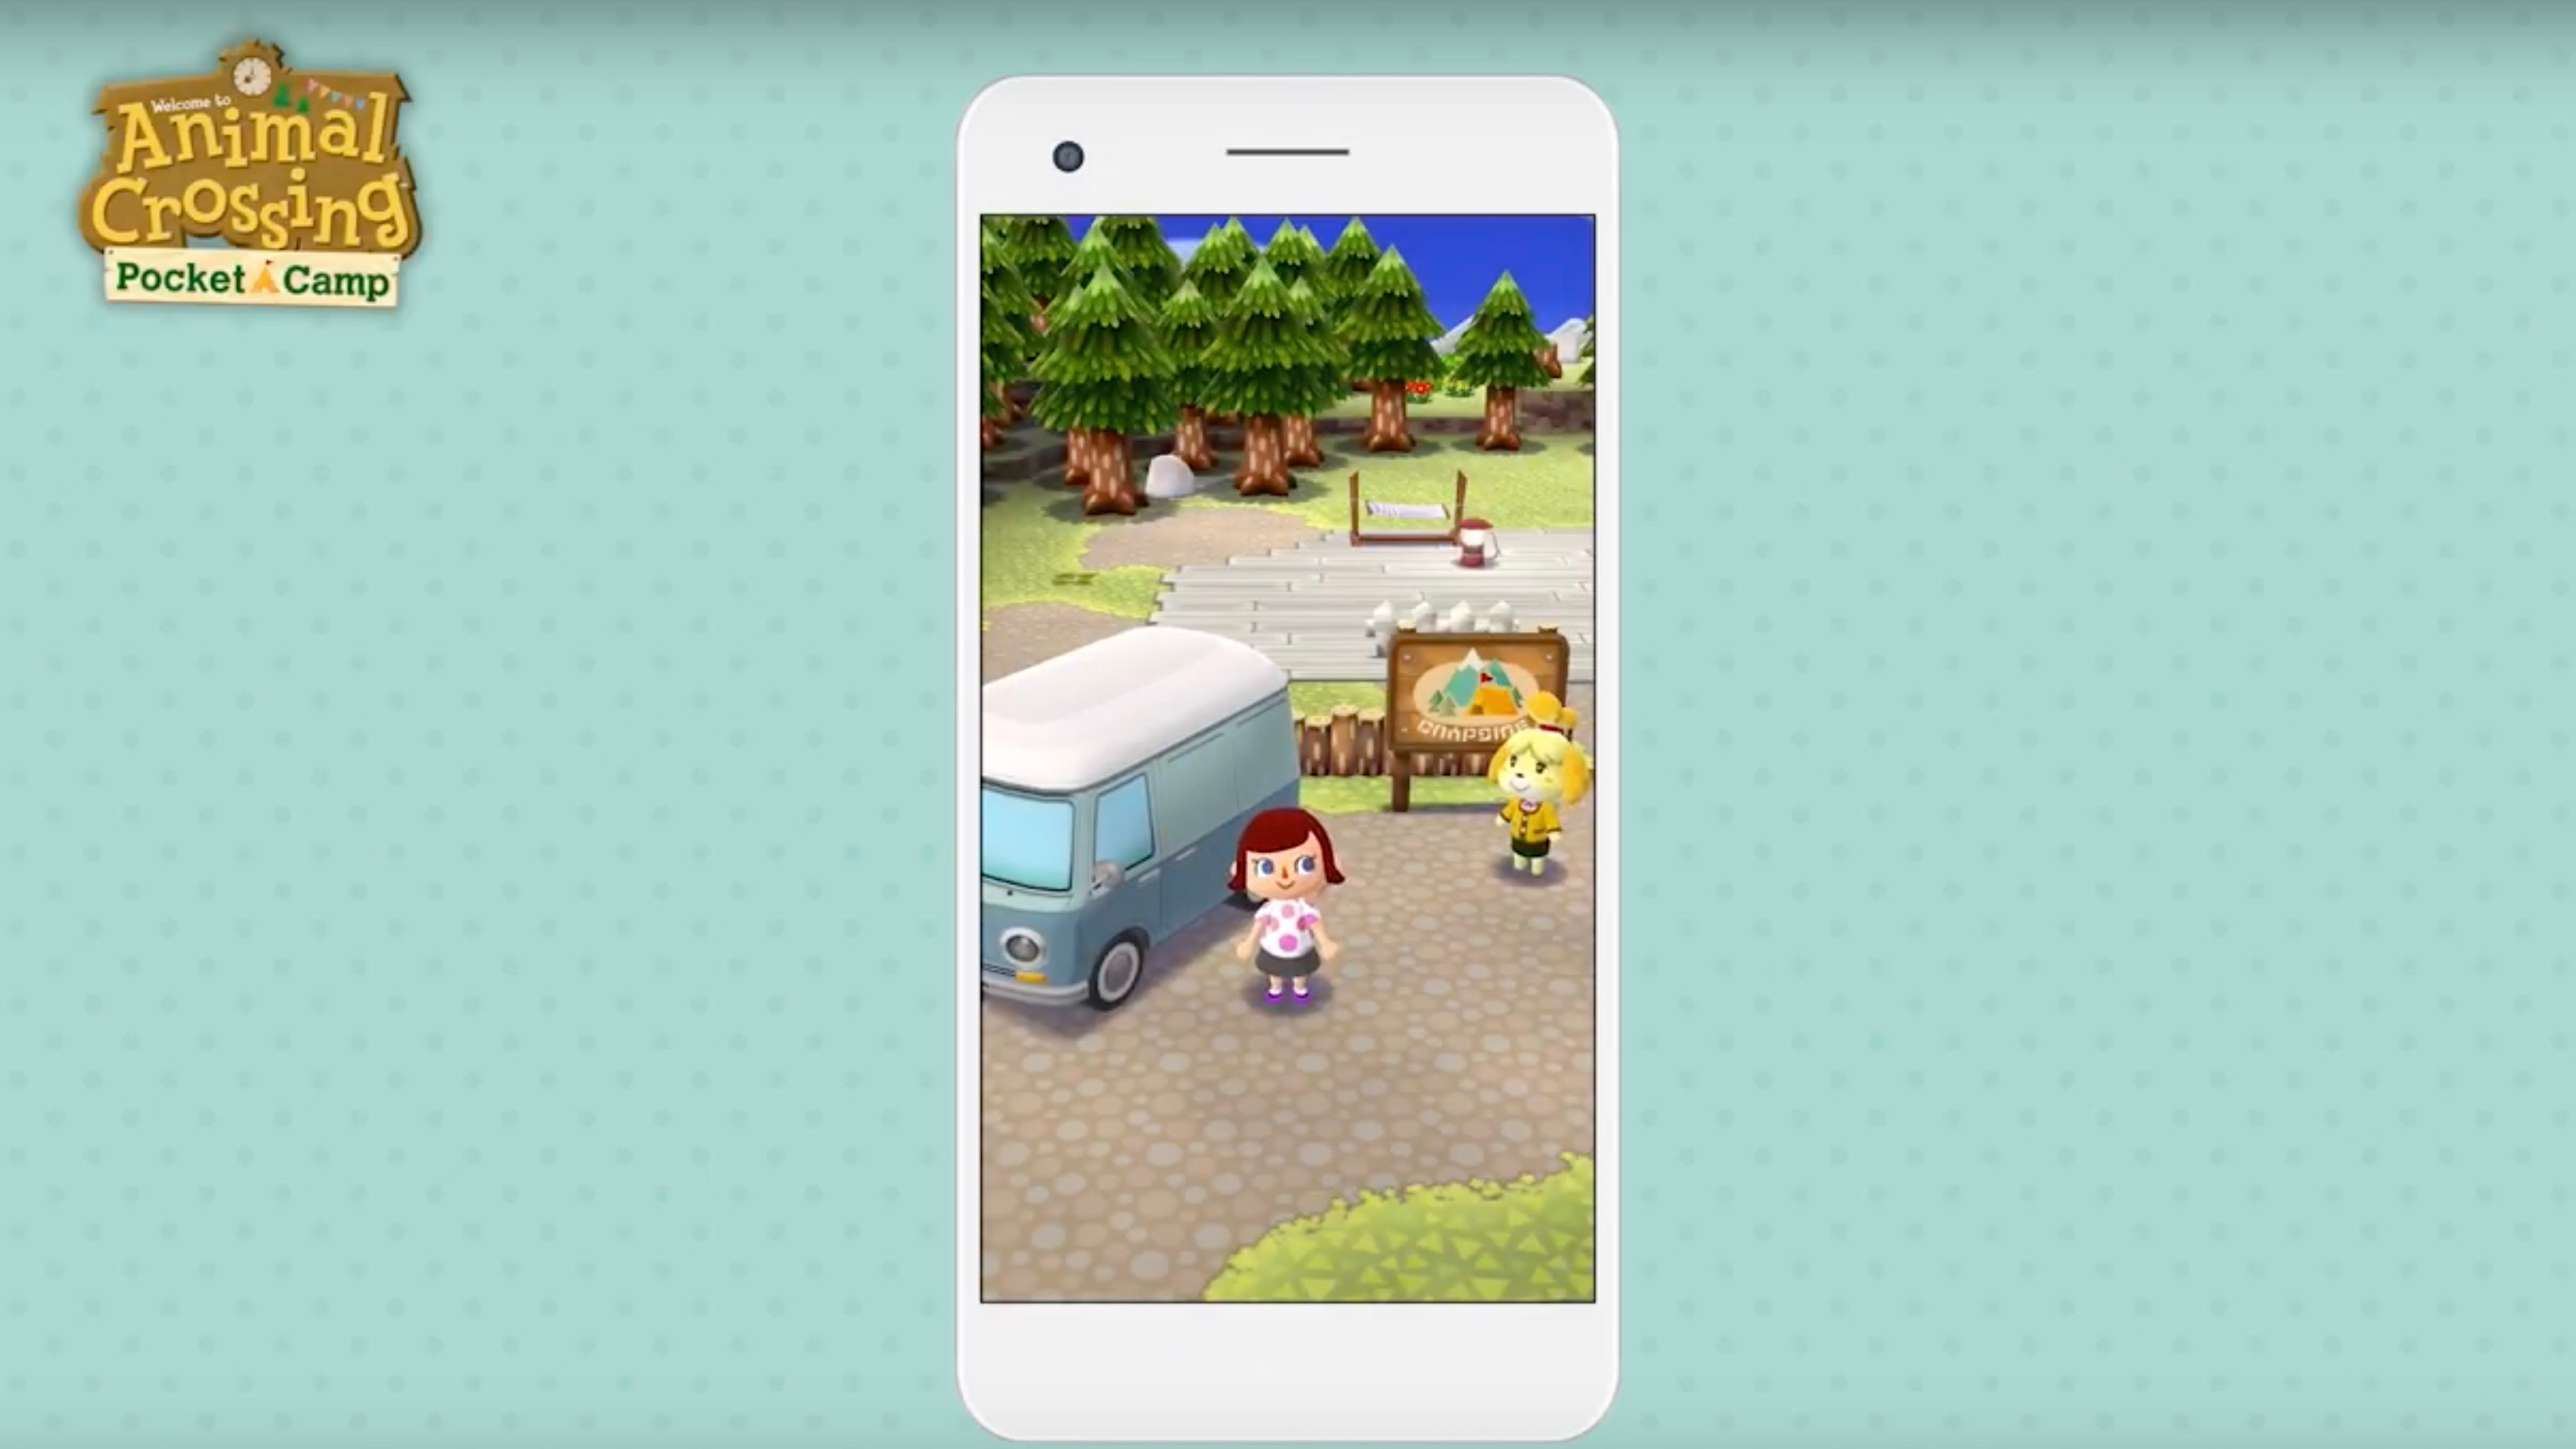 Image of: Animal Crossing Nintendo Announces Animal Crossing Pocket Camp Coming To Ios Next Month 9to5mac Nintendo Announces Animal Crossing Pocket Camp Coming To Ios Next